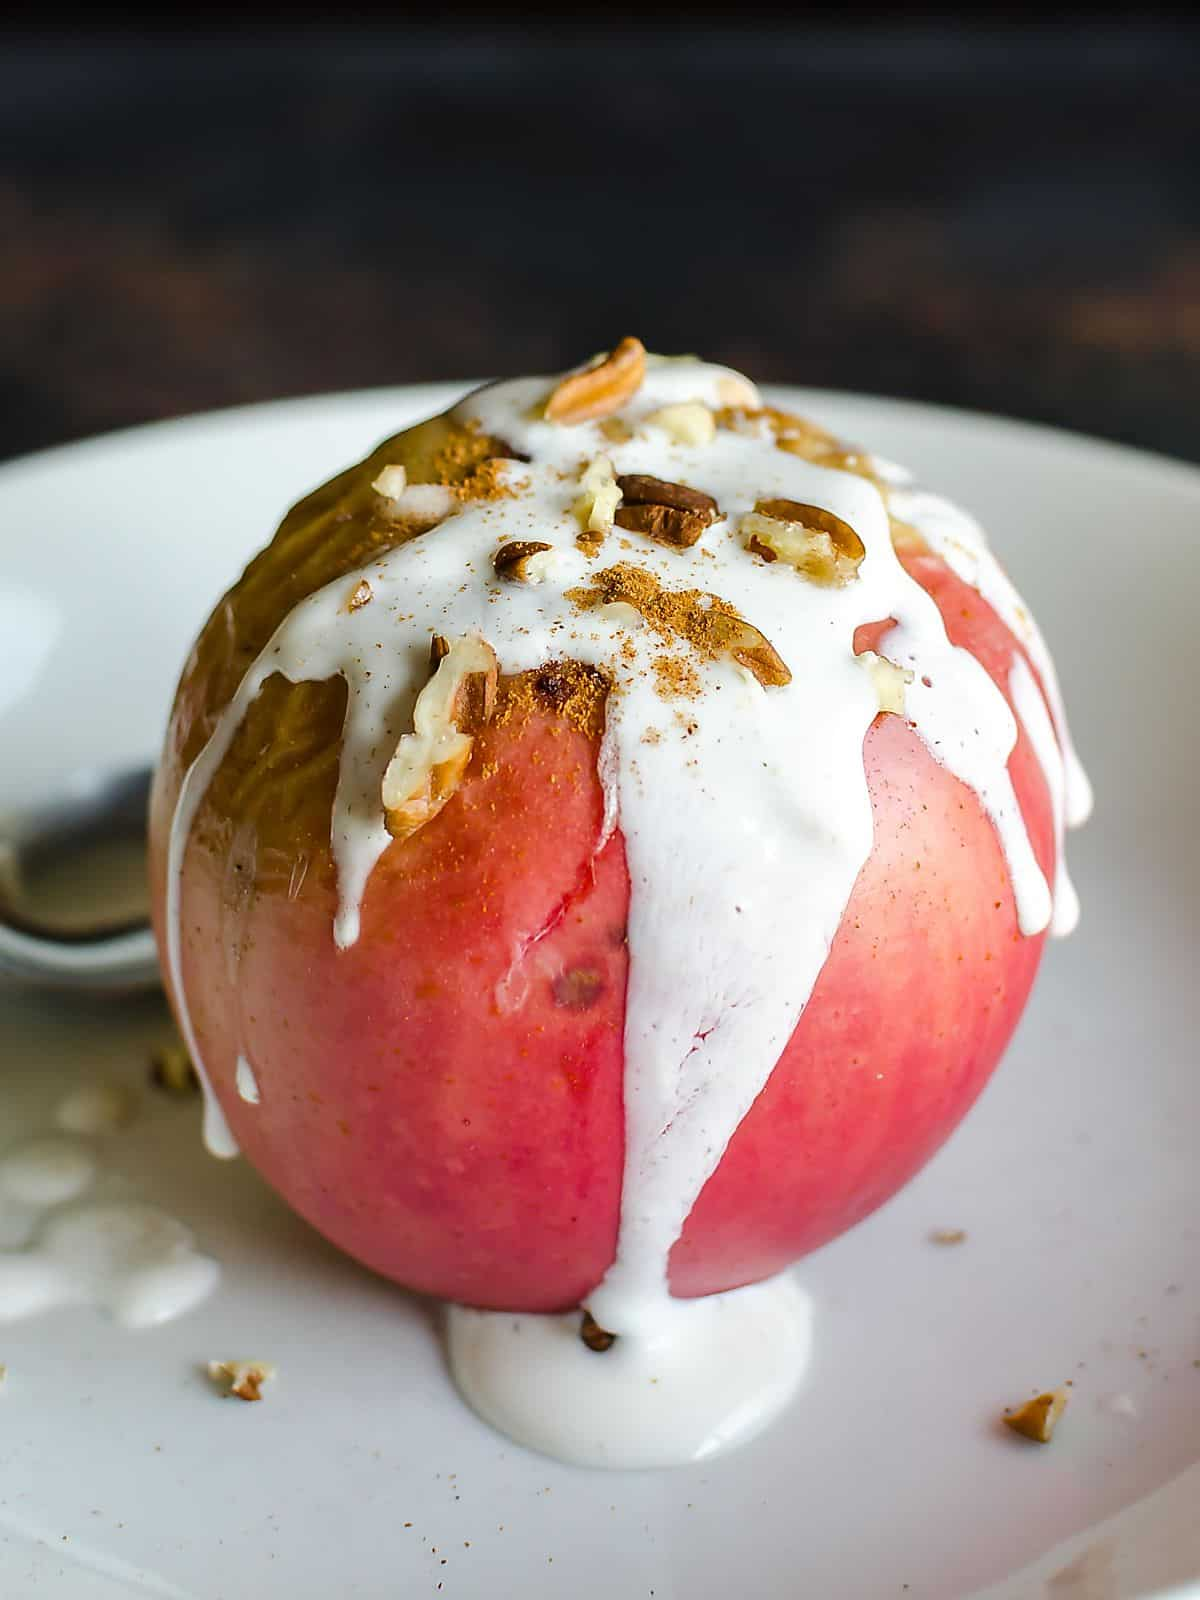 Healthy baked apple with creamy yogurt sauce dripping down the sides and topped with chopped pecans